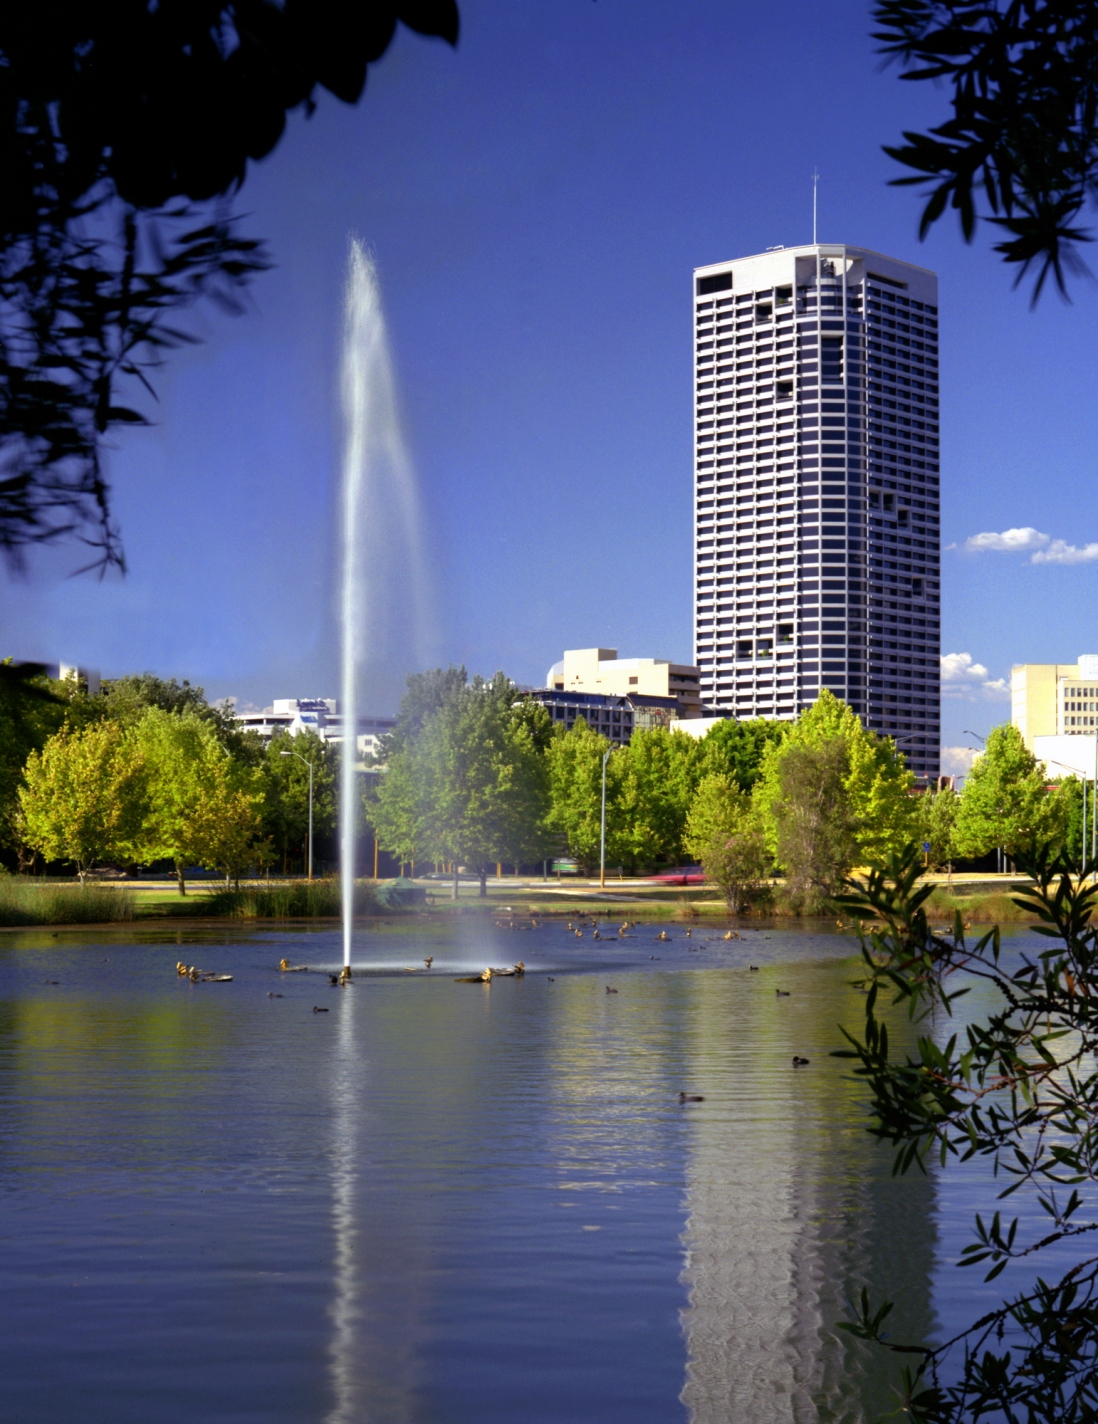 This is a colour photograph of an office tower with a wide river and fountain of water in the foreground